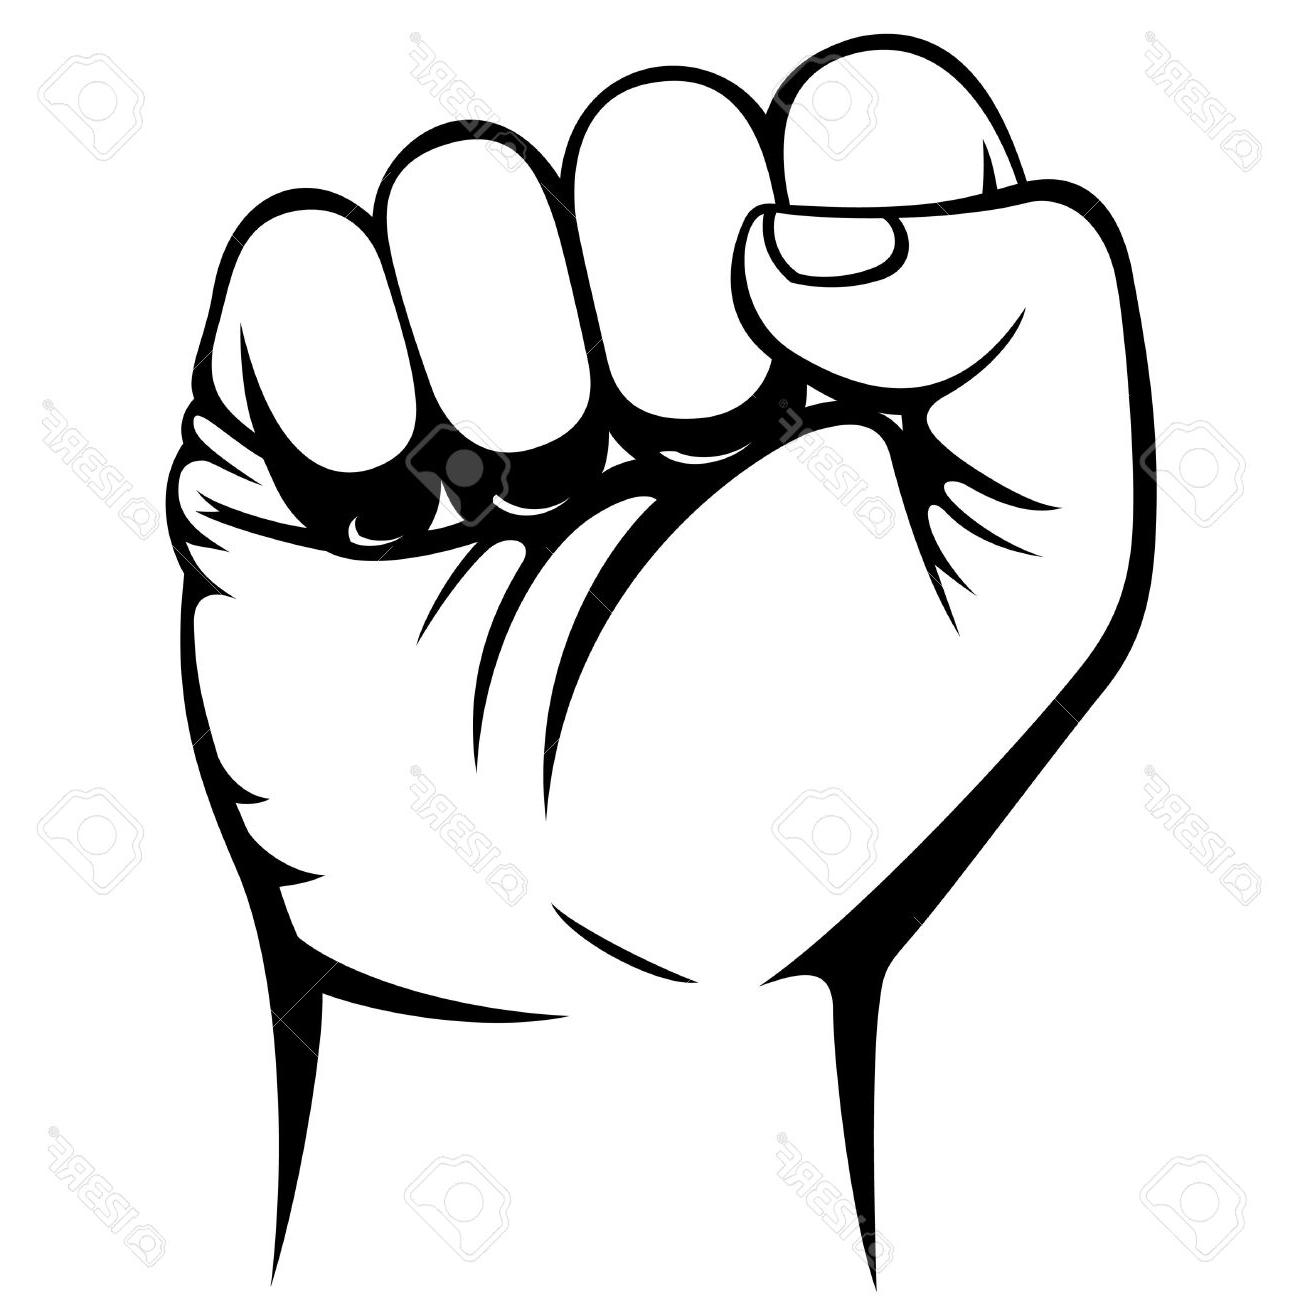 Fist Clipart Fist Transparent Free For Download On